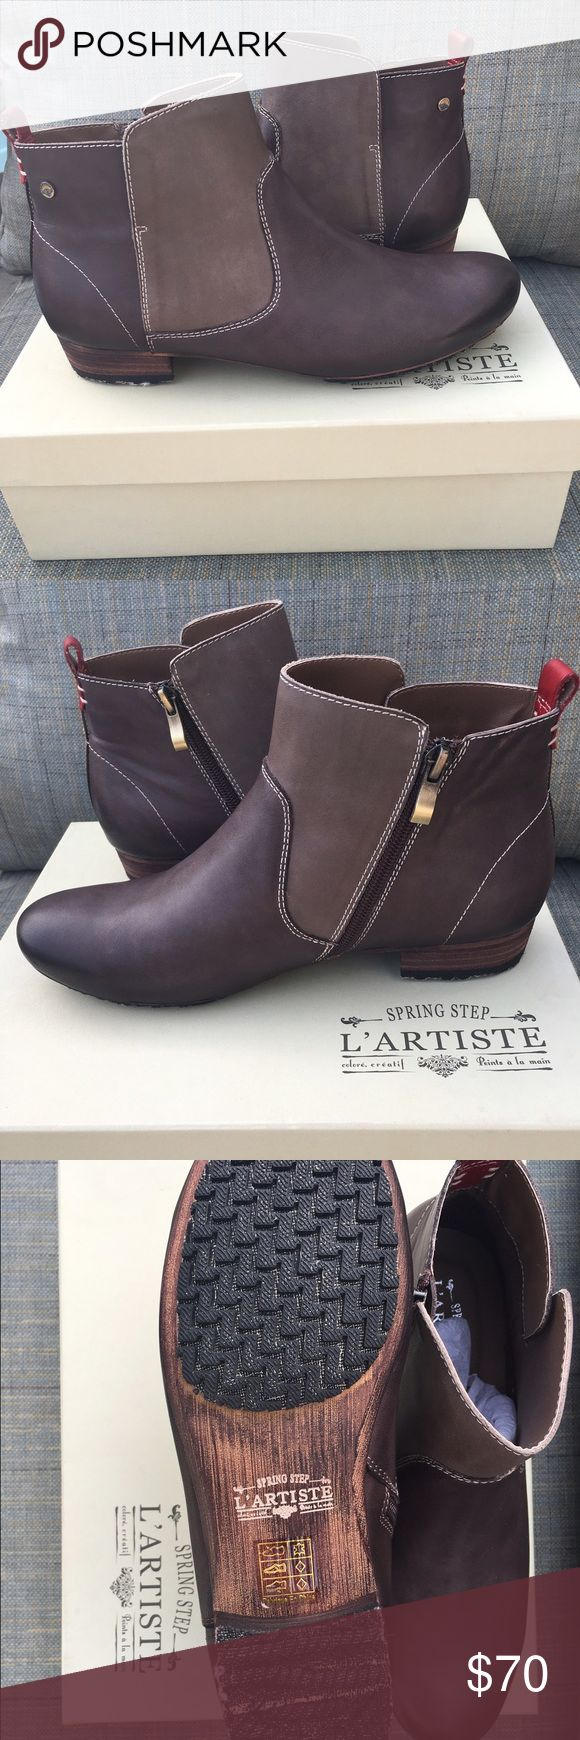 "L' Artise Aladyn The L'Artiste Aladyn is a stylish vintage multi-colored boot with full length inside zipper. Comfort padded insole with super soft lining. Insole: textile  Heel Height: 1"" Origin: Imported Fit: True to Size  Outsole: Rubber Upper: Leather L'artise Shoes Ankle Boots & Booties"